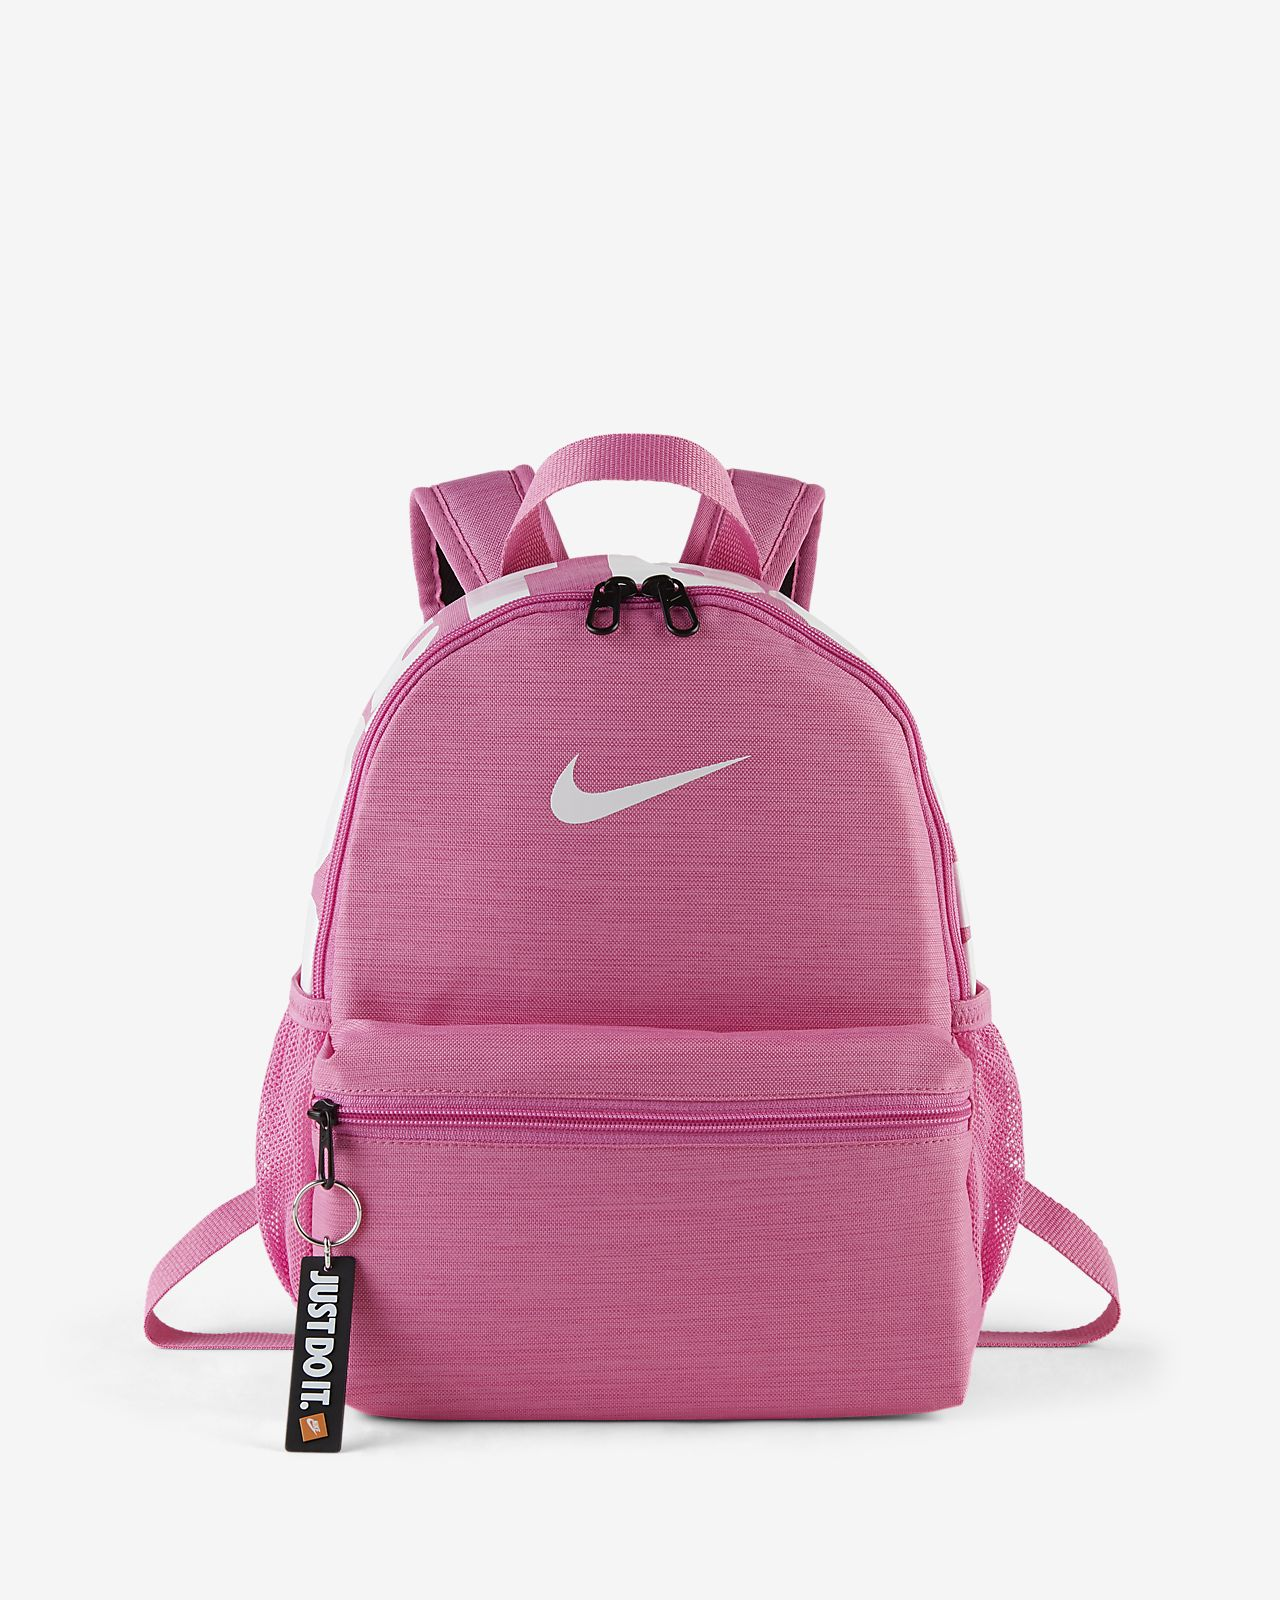 Nike Brasilia Just Do It 儿童双肩包